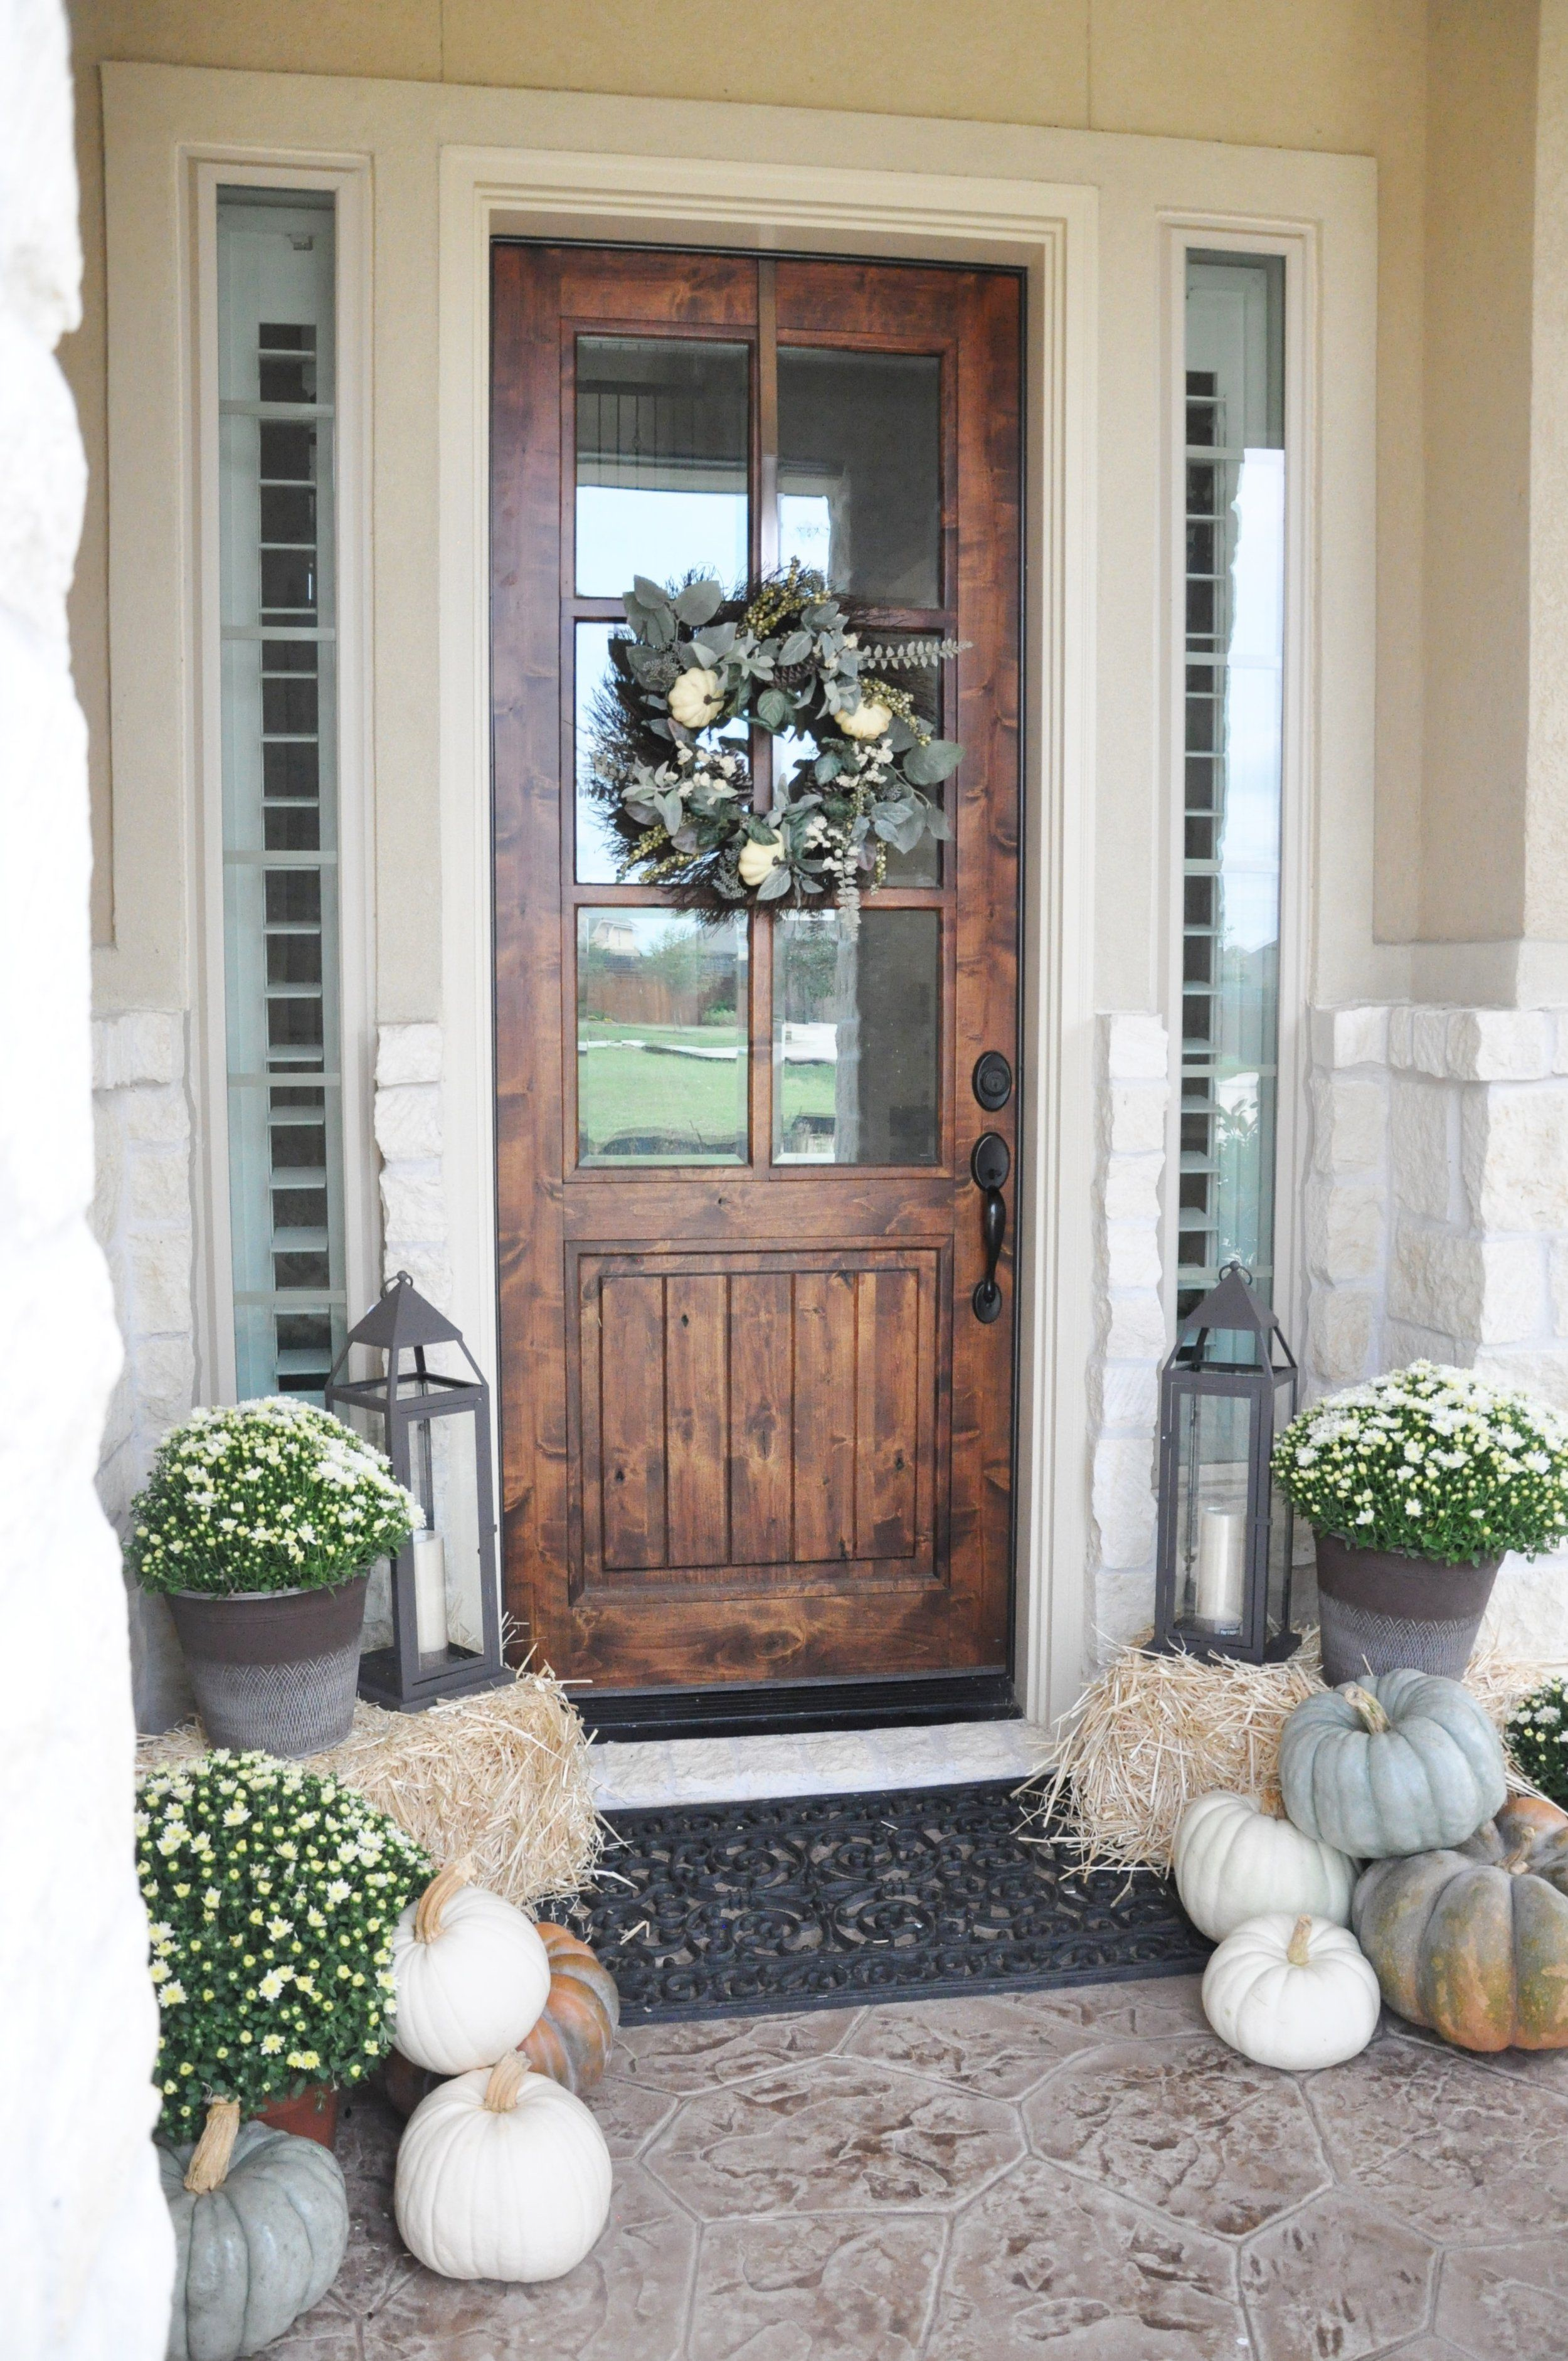 Front door with sidelites m6410 103010 ct 4irh the home depot - Our Best Selling Front Door Entrance Unit Model 186 This 6 Lite Door With Beveled Glass Is A Timeless Look Call The Store For Details 865 524